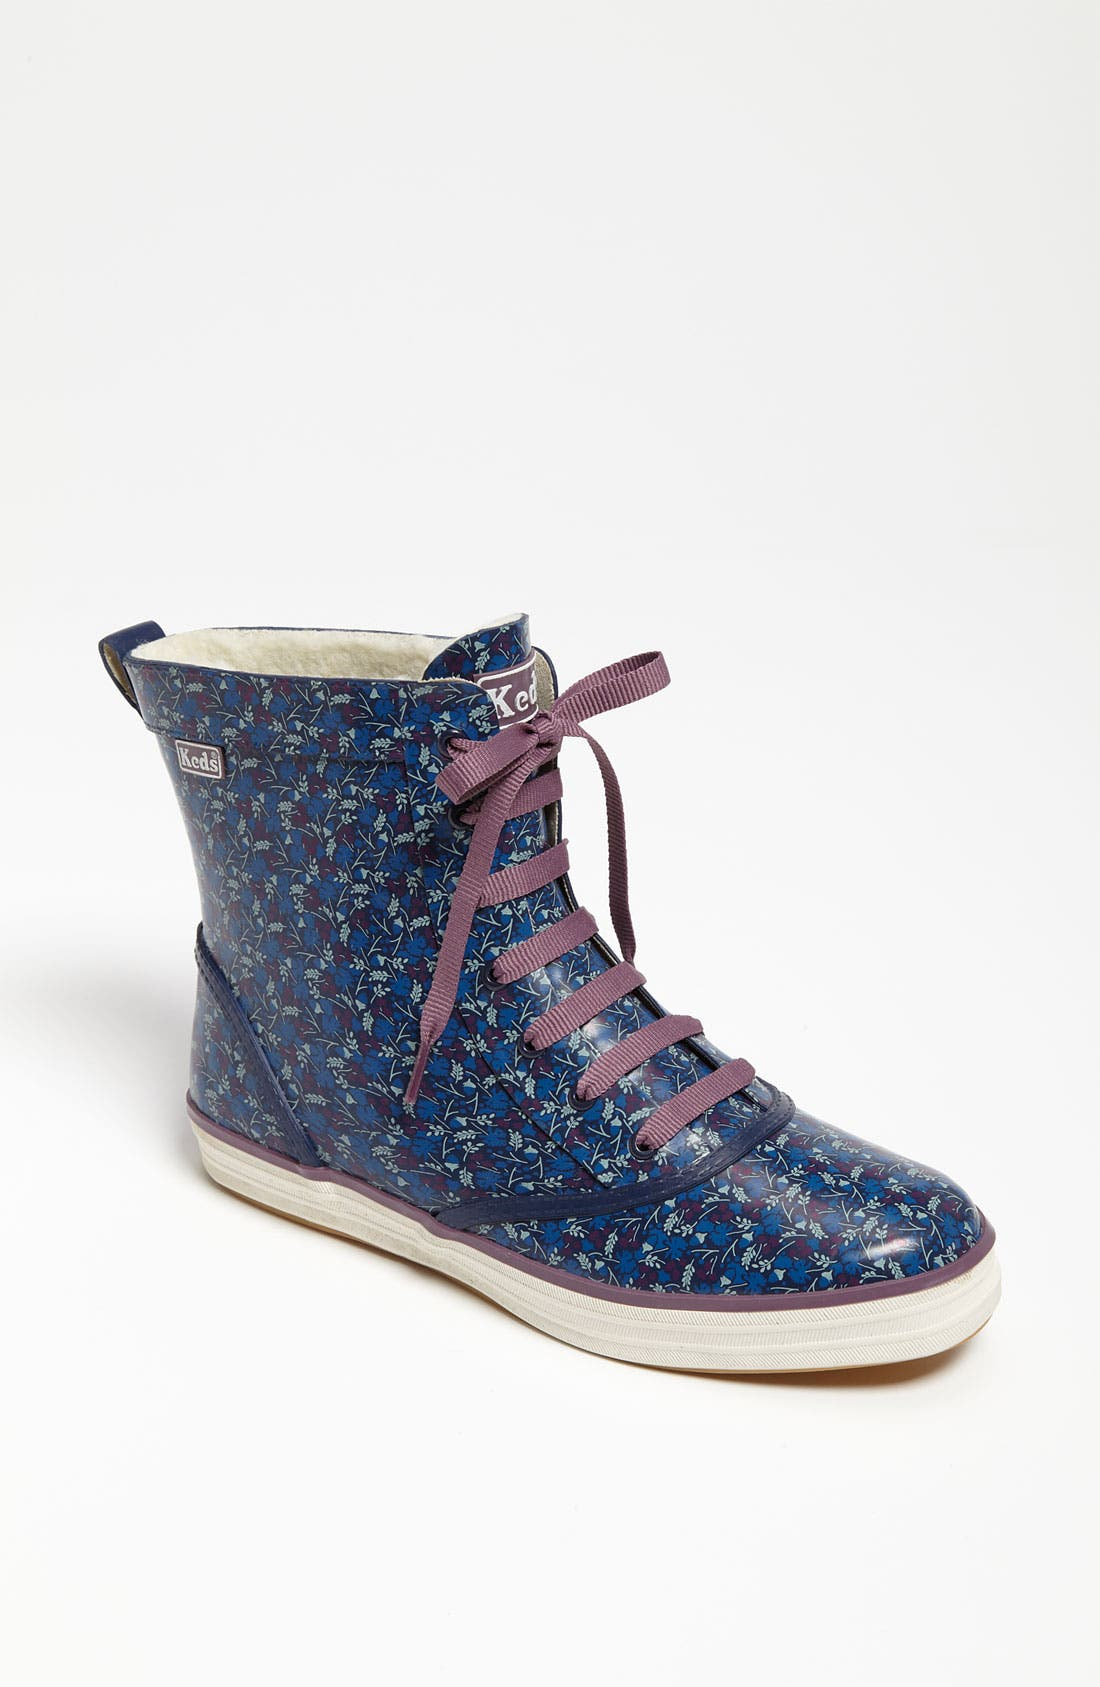 Alternate Image 1 Selected - Keds® 'Champion Puddle Jumper' Boot